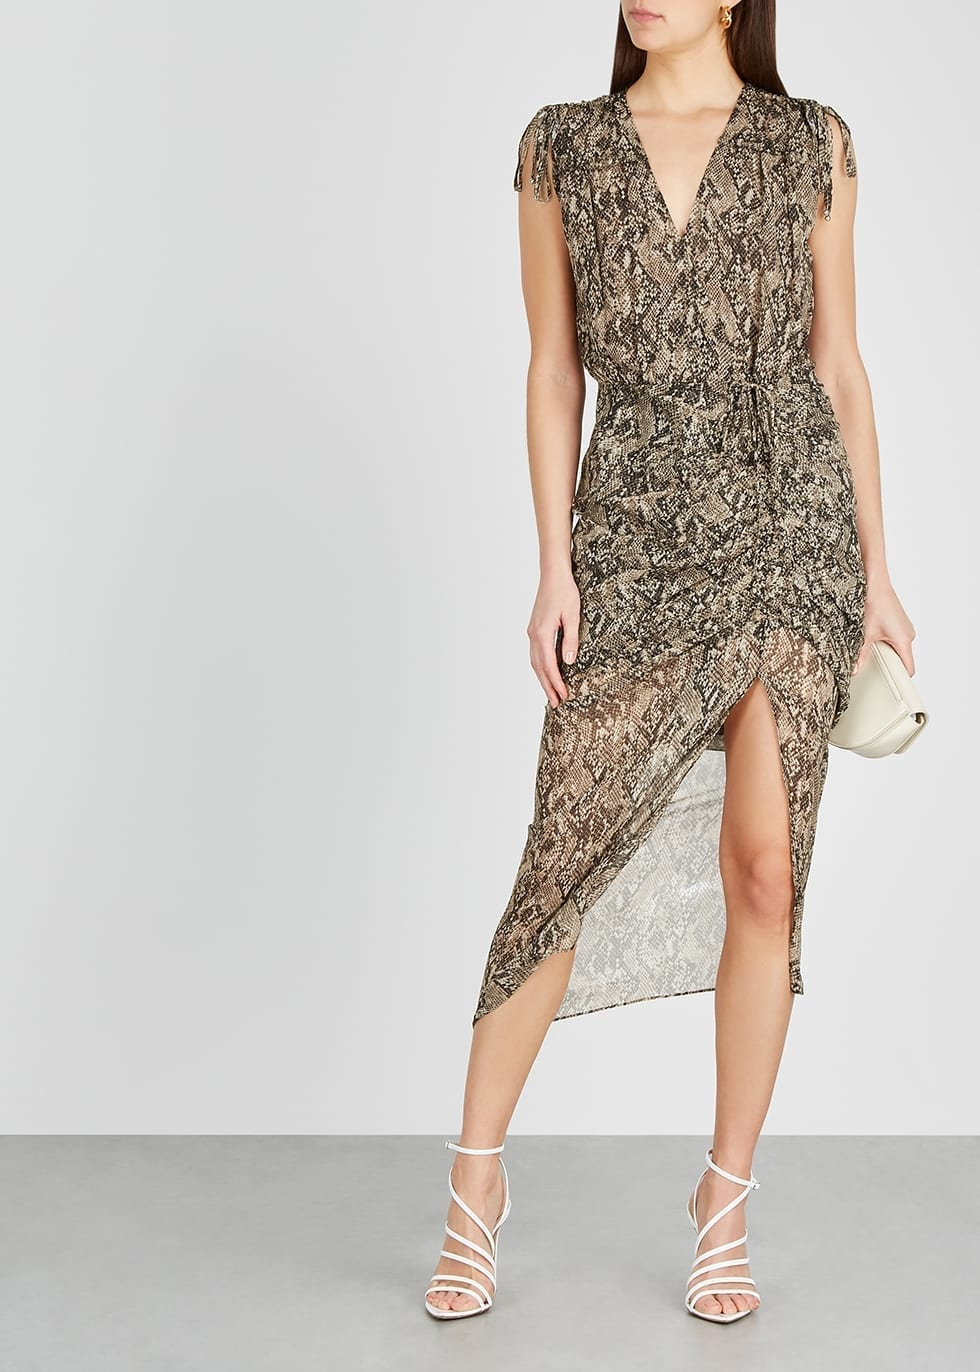 VERONICA BEARD Teagan Python-print Chiffon Midi Dress